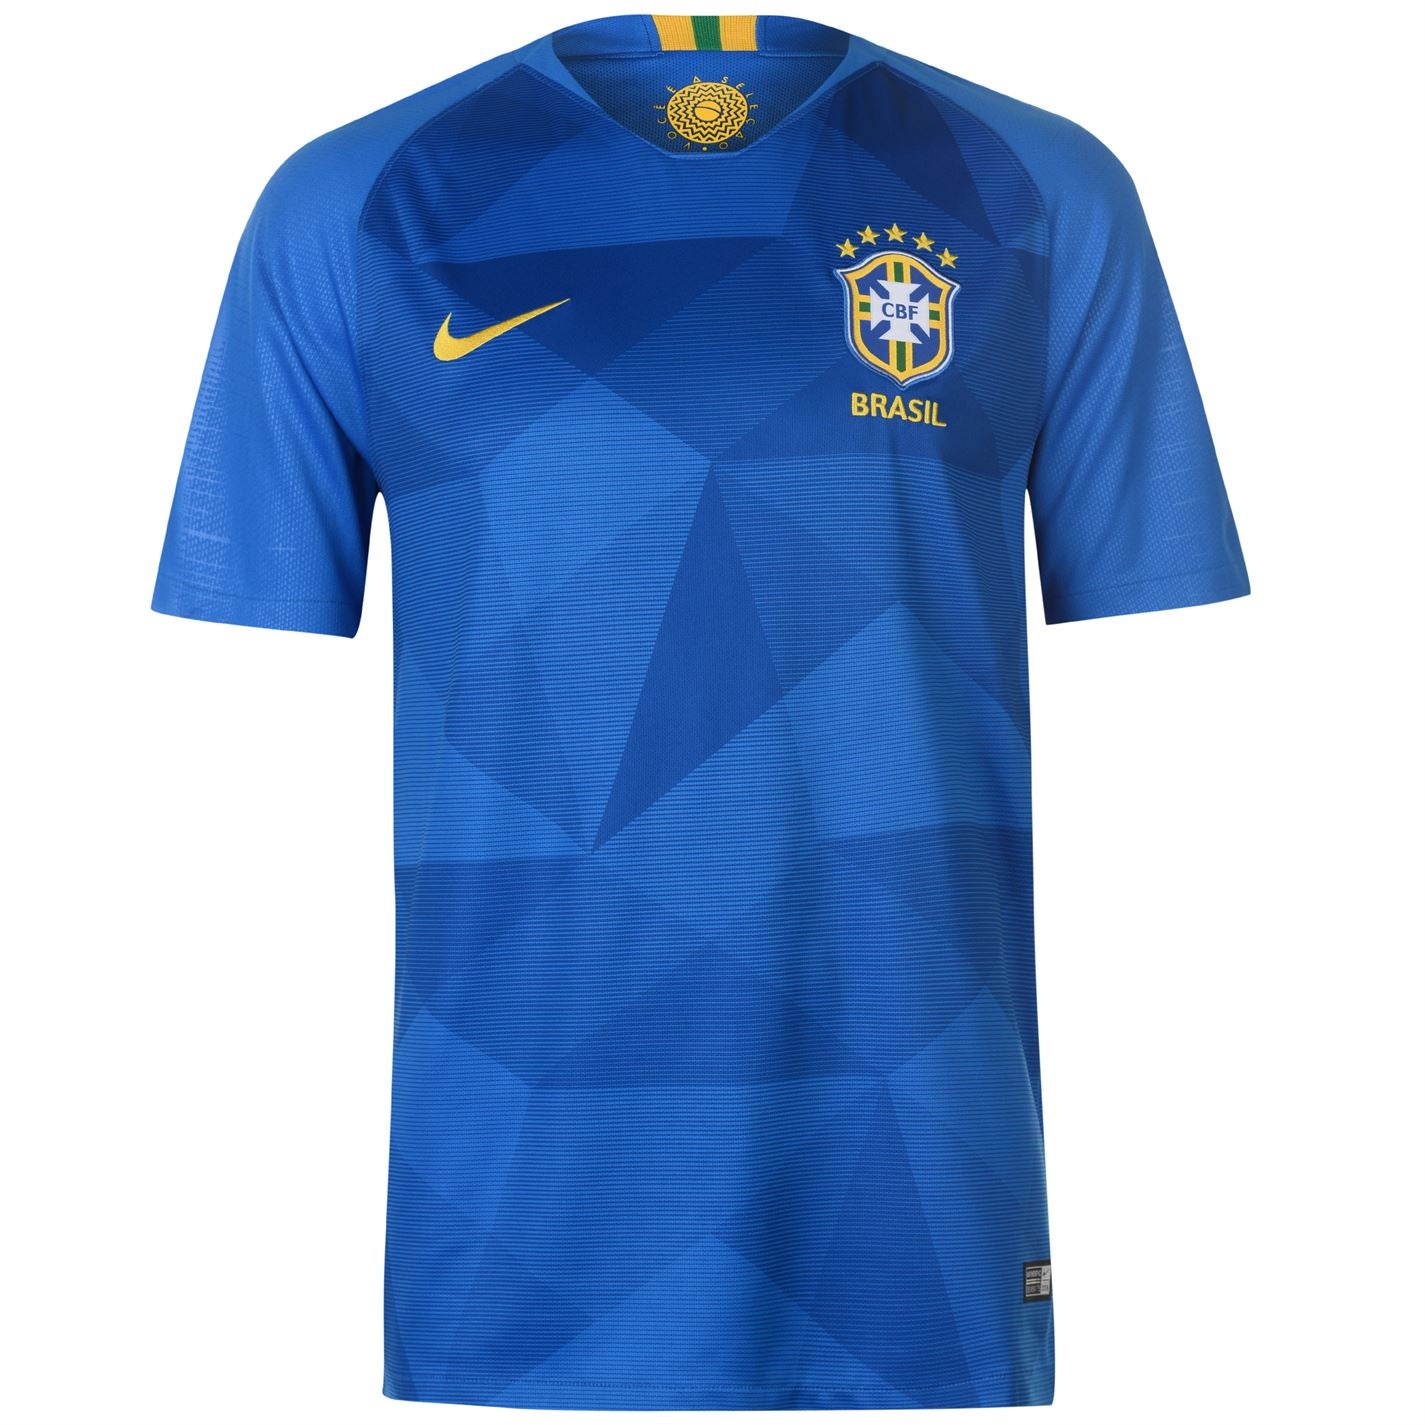 Brazil World Cup 2018 Official Nike Away Shirt